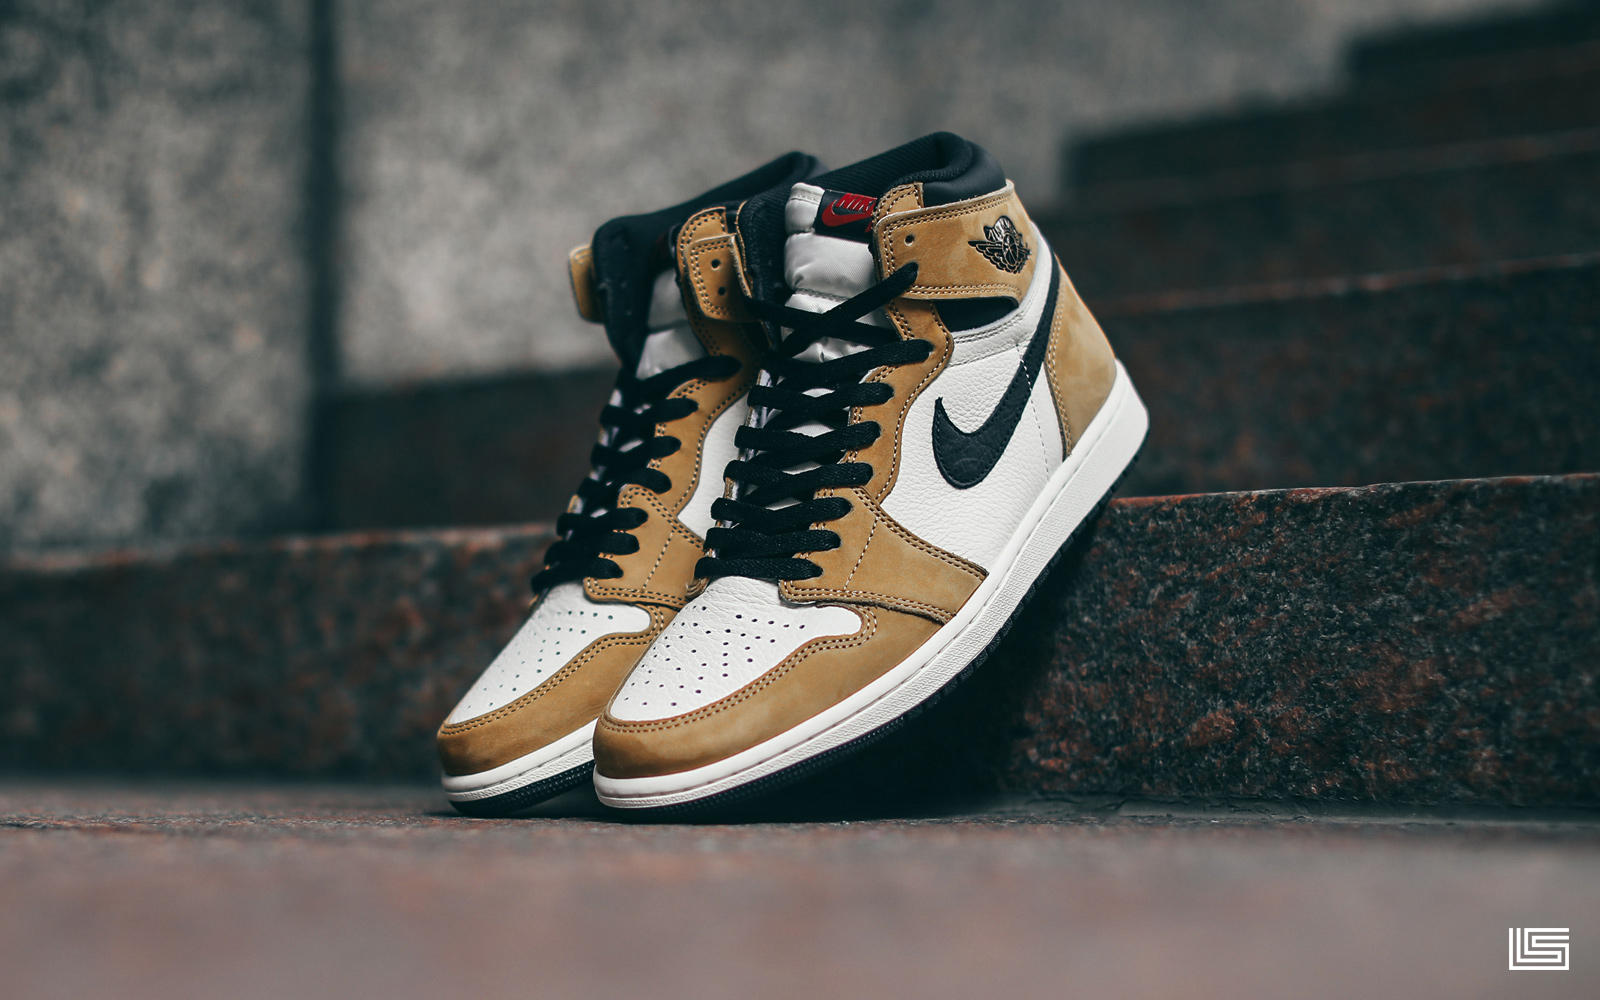 55ee93e6eb2d The Air Jordan Retro 1 OG  Rookie of the Year  is available November 17th  at 10AM.